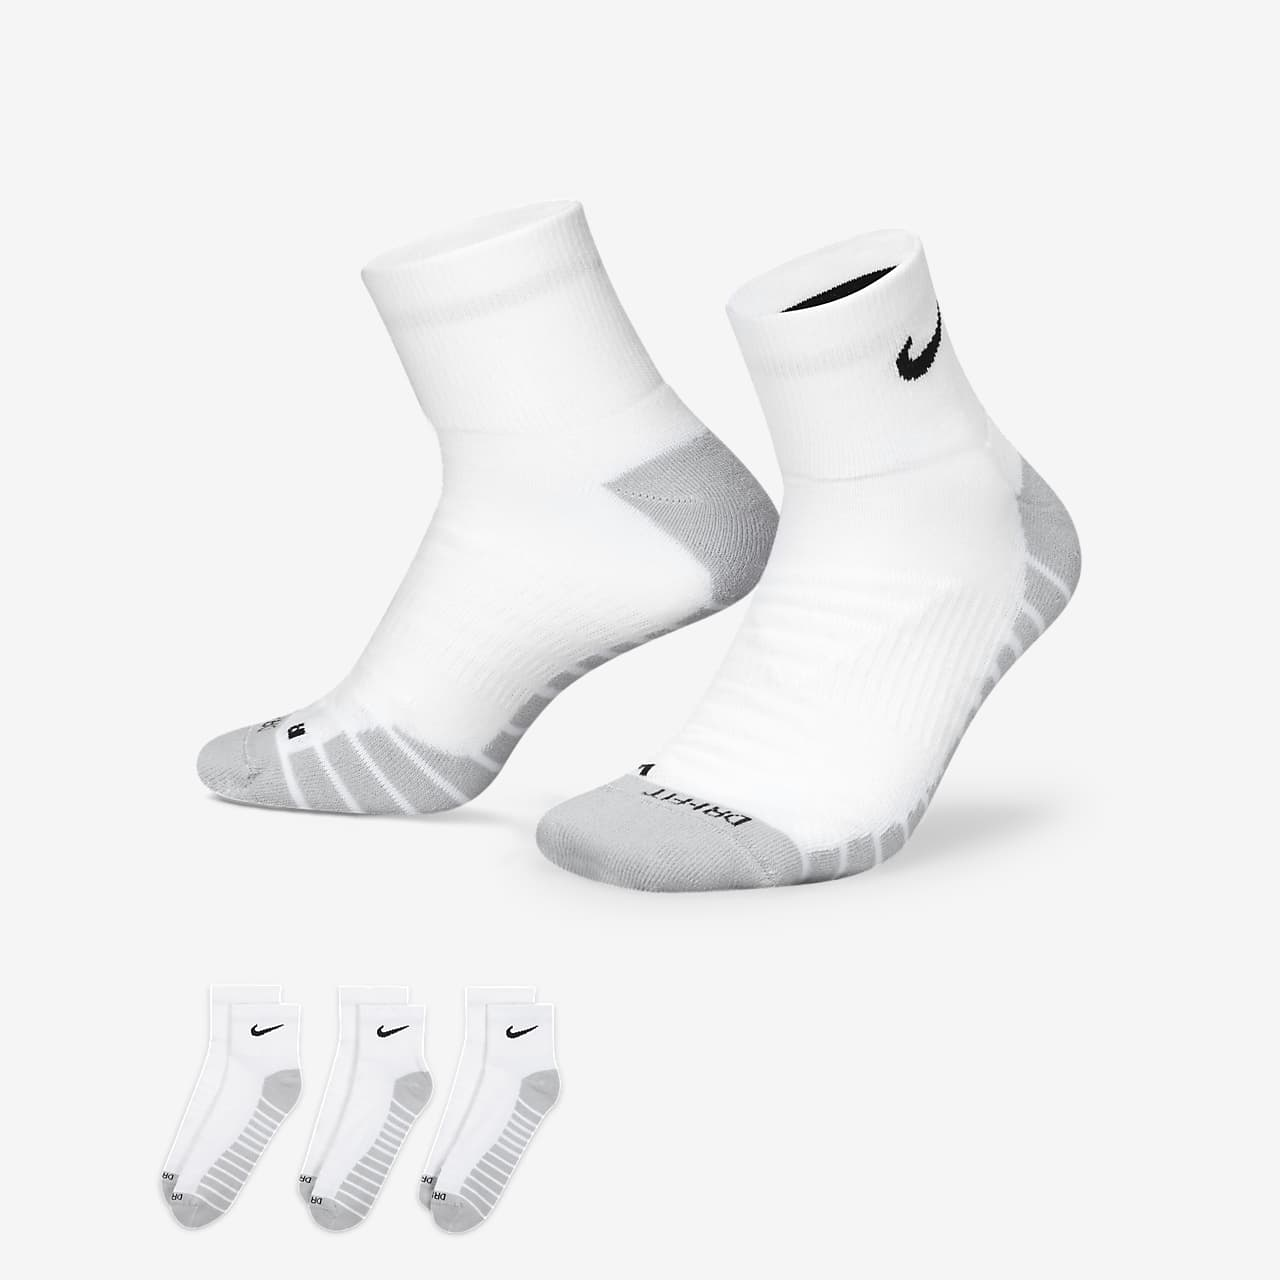 Chaussettes de training Nike Everyday Max Cushioned (3 paires)